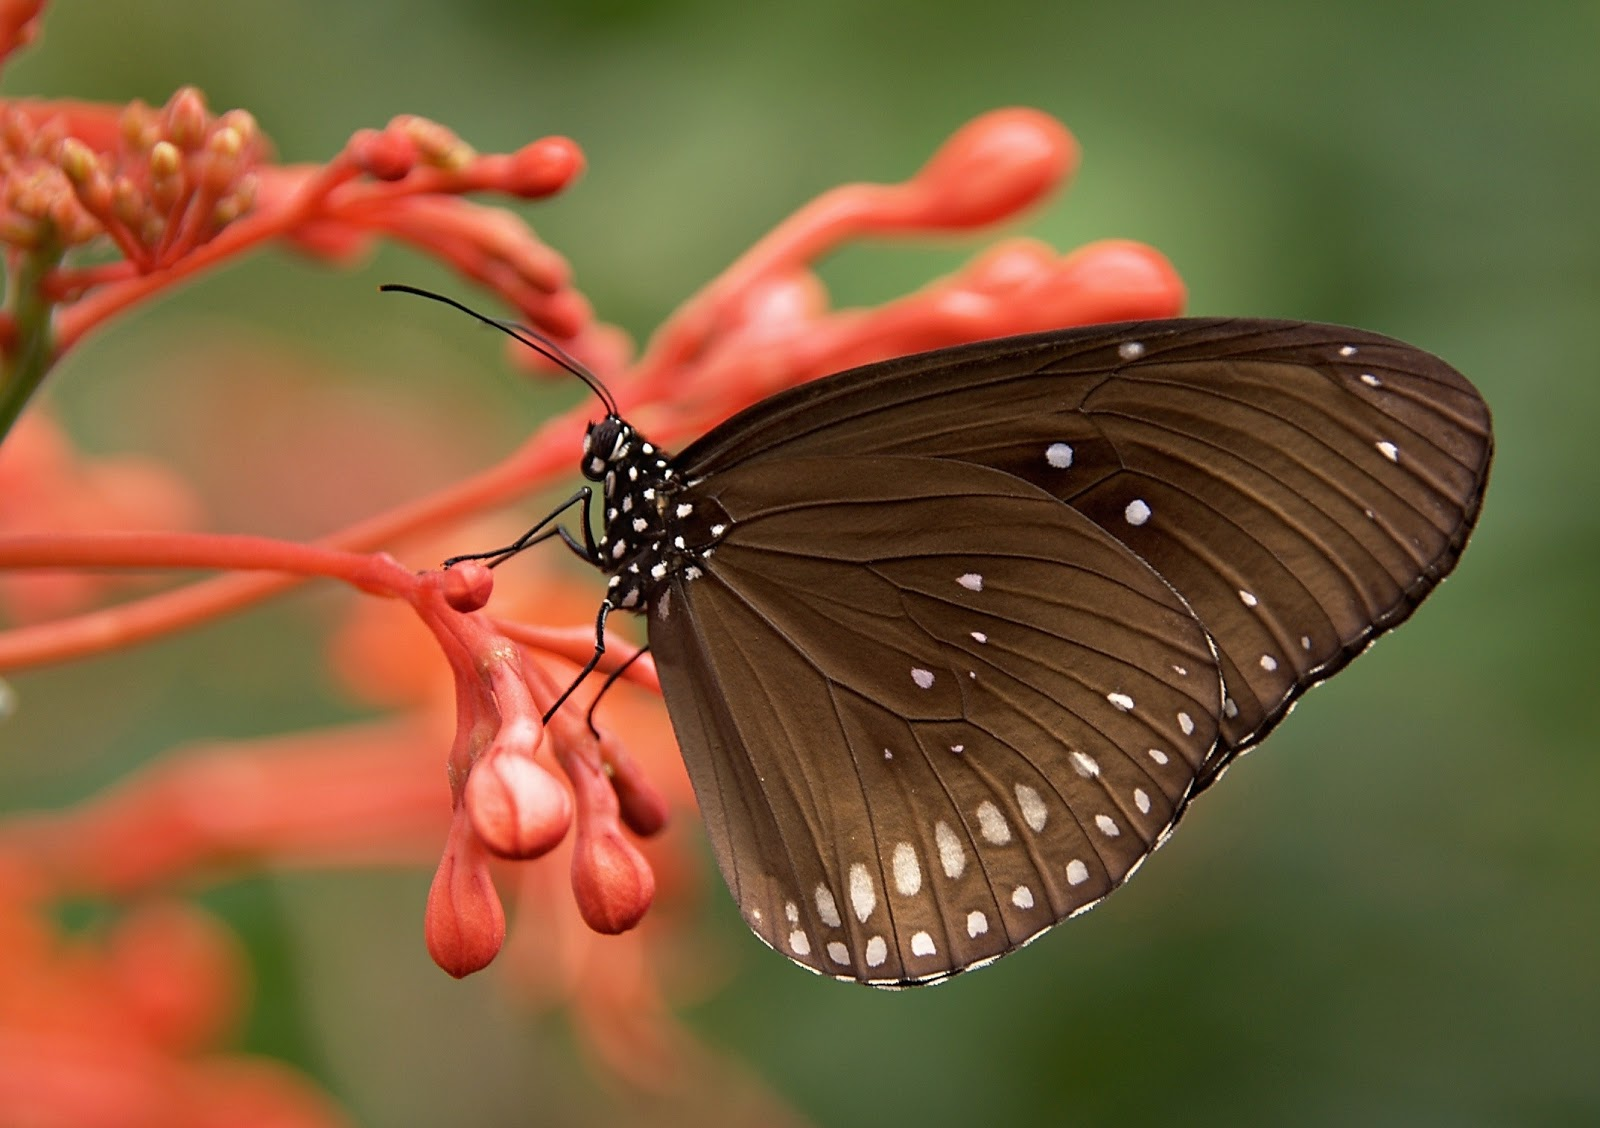 black-and-white-butterfly-on-red-flower-images